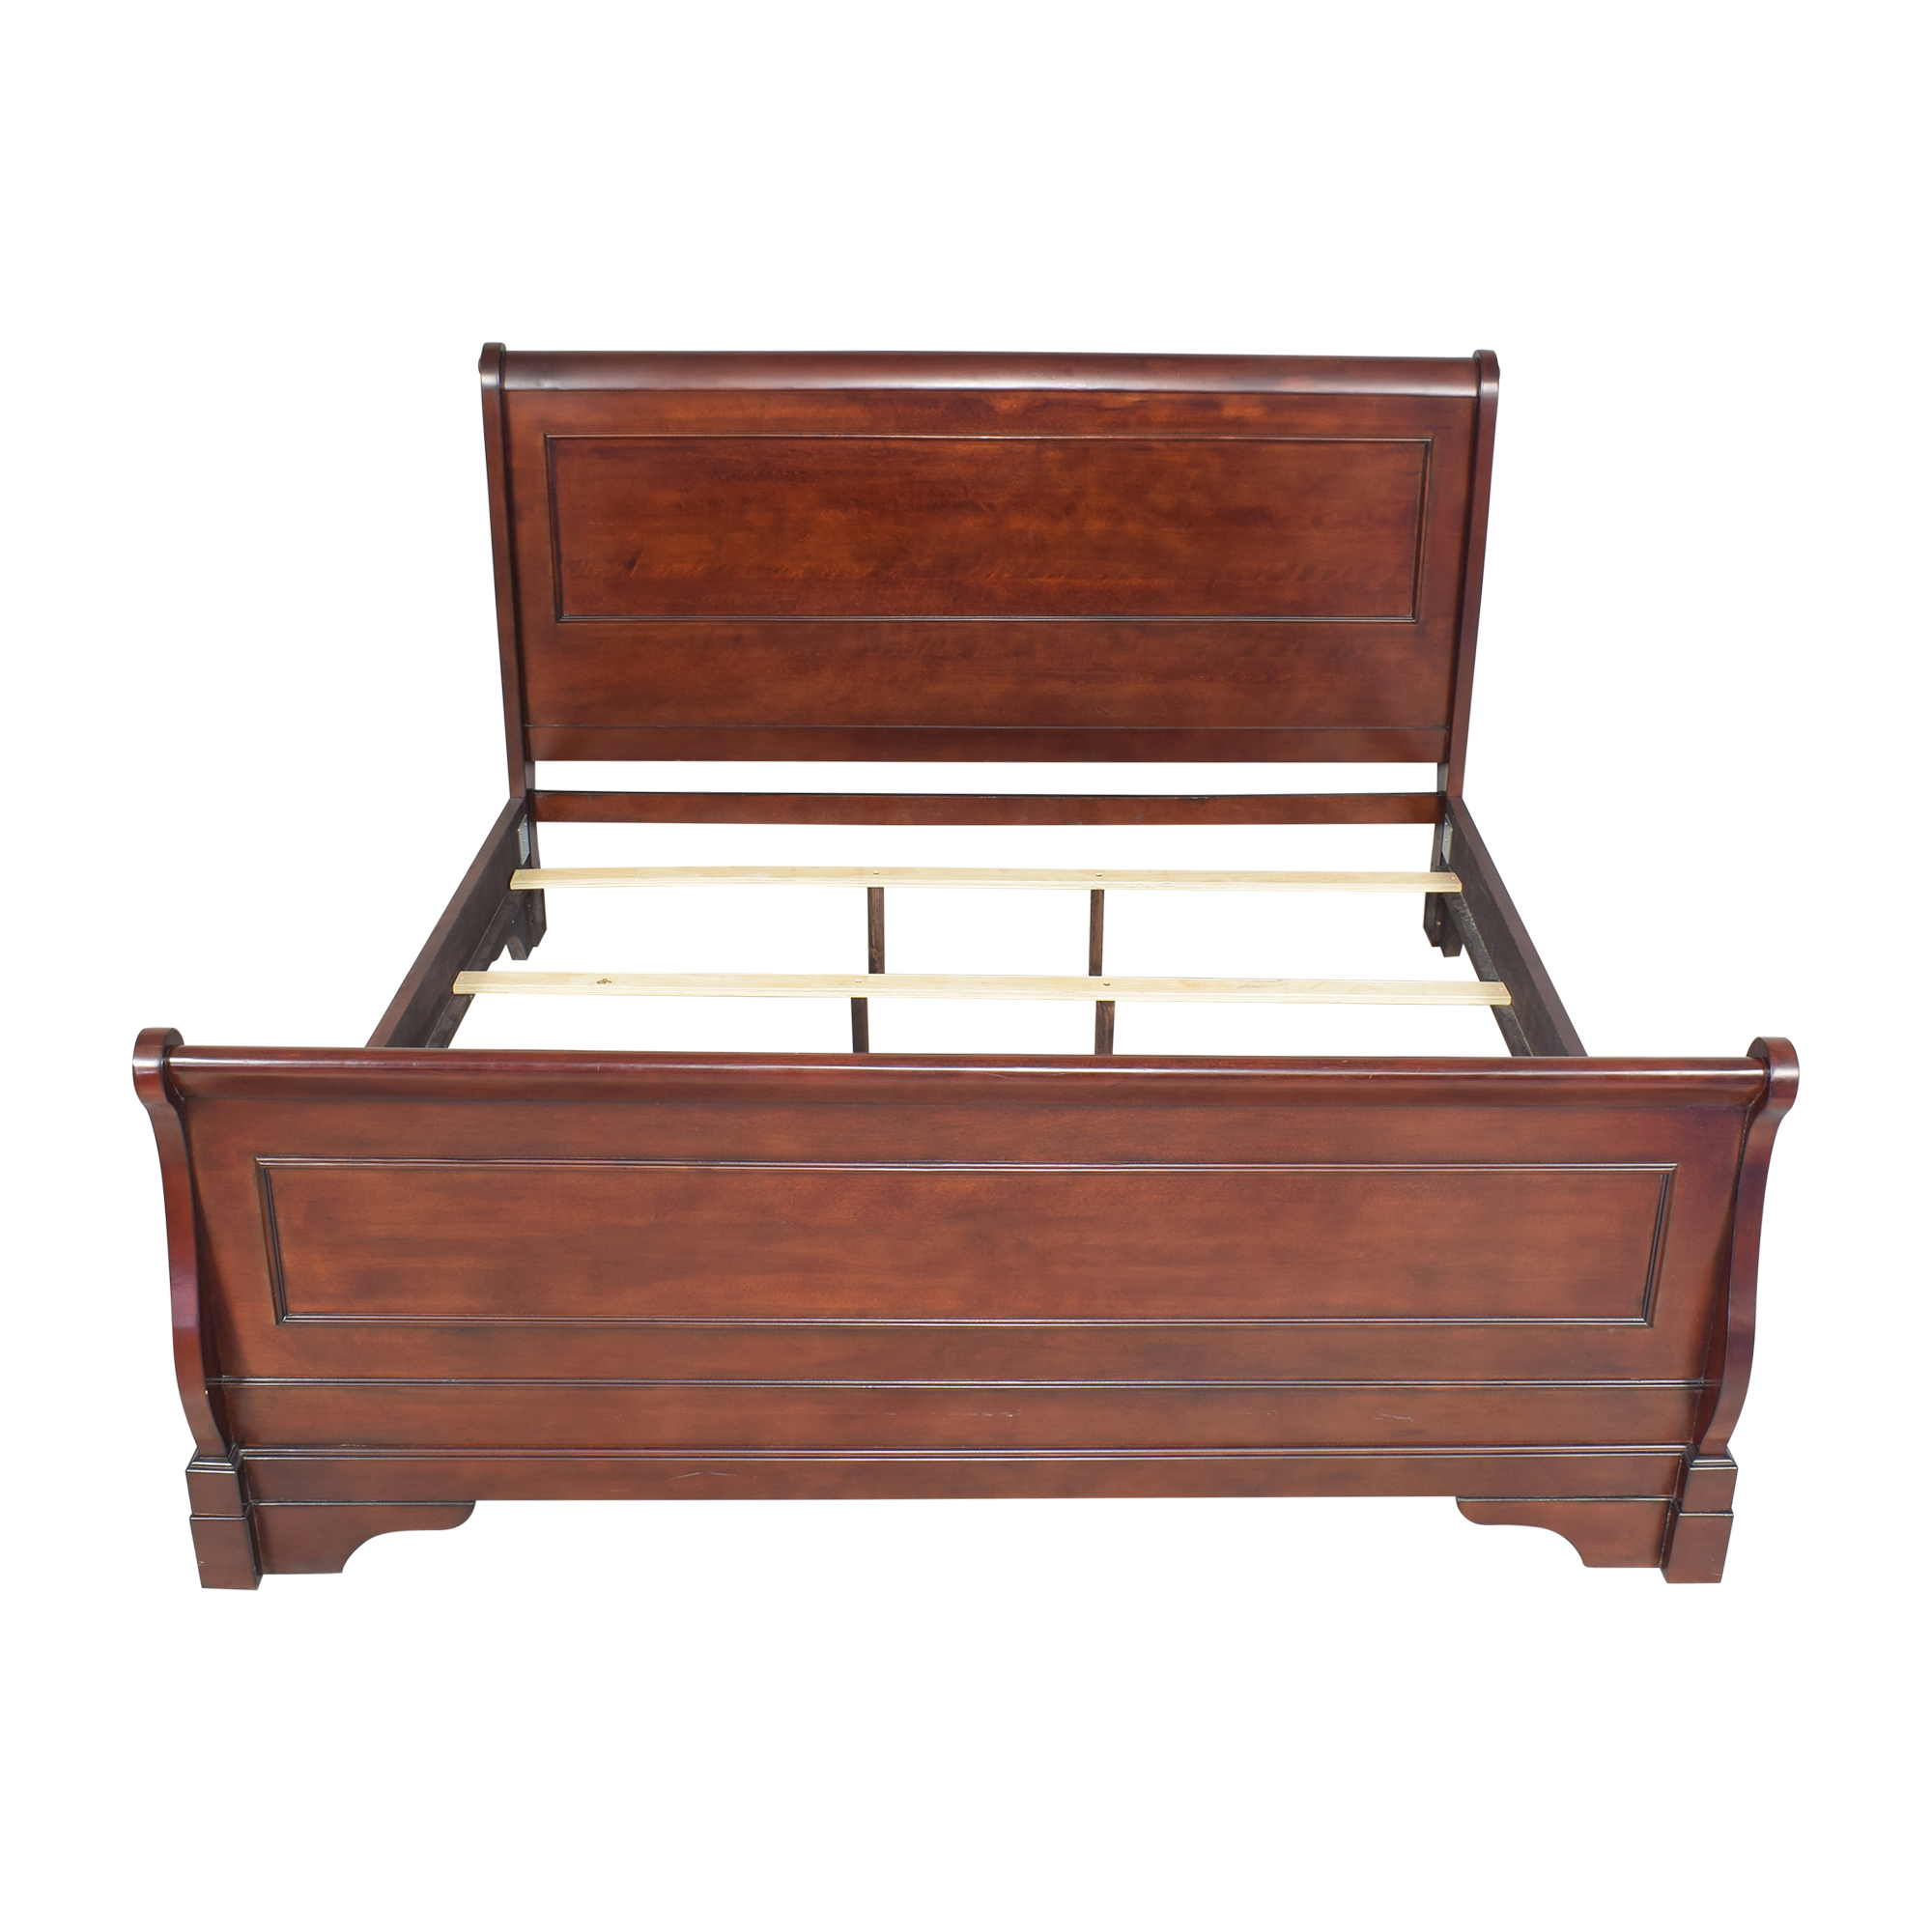 New Classic Furniture New Classic Furniture Versaille King Sleigh Bed second hand